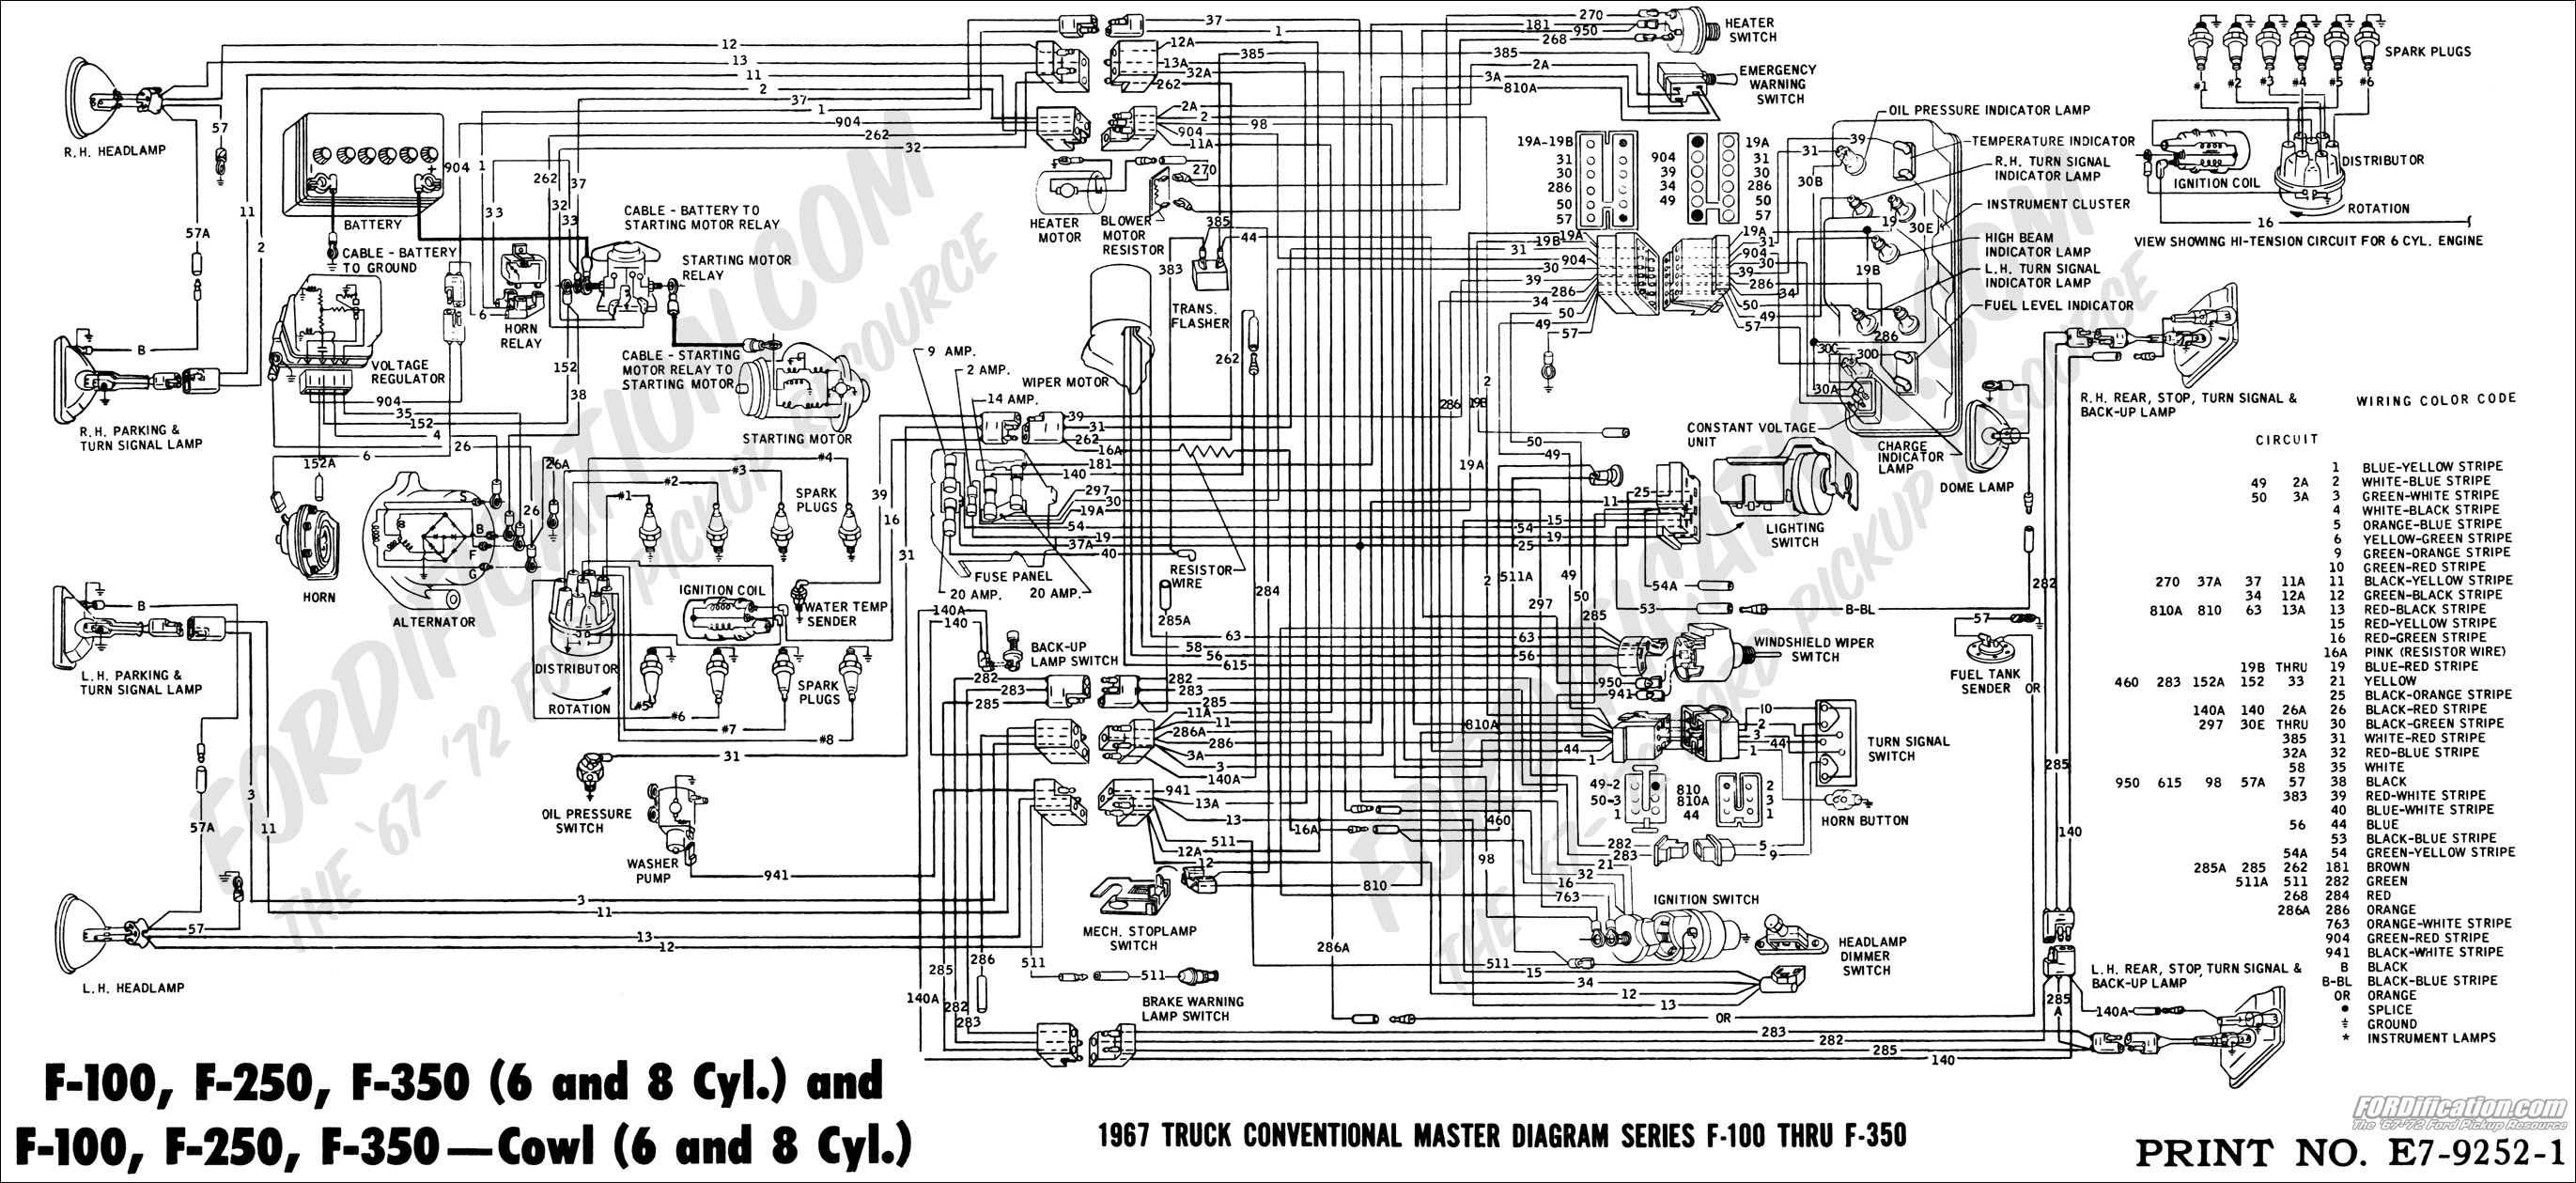 1968 Ford F250 Wiring Diagram Schematics Mercruiser Electrical System Diagrams F 250 On Free Mercury 1966